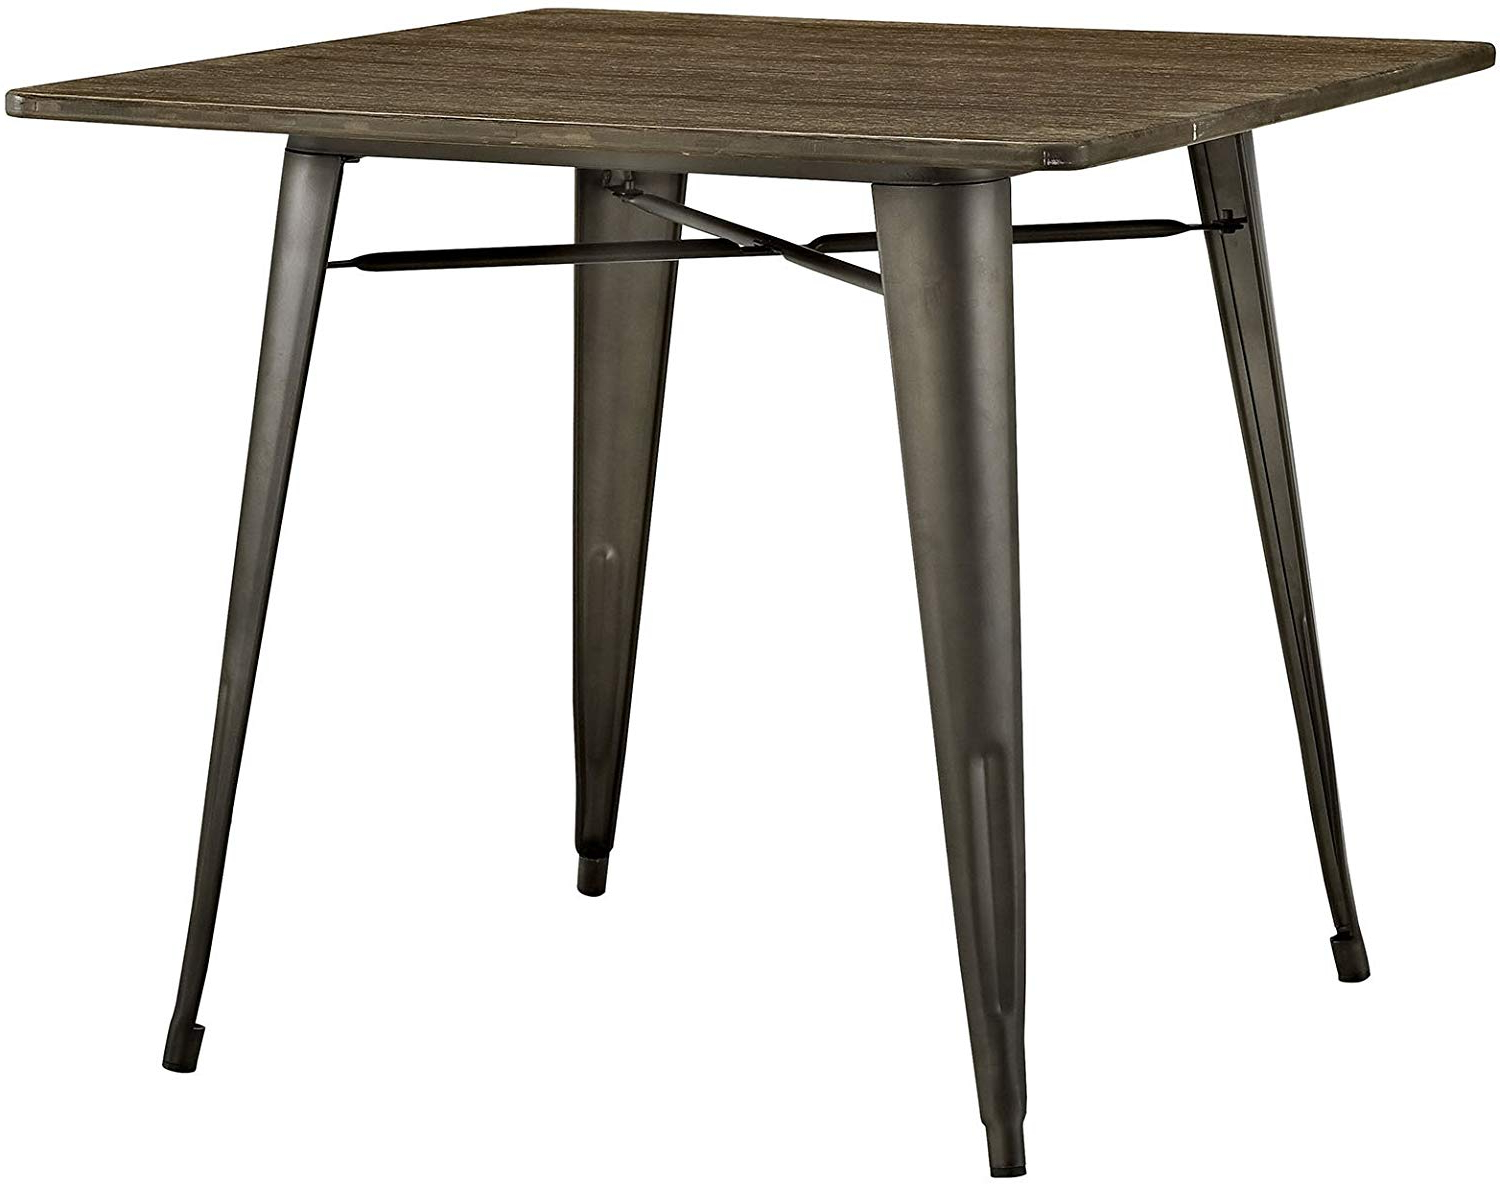 """Vintage Cream Frame And Espresso Bamboo Dining Tables Within Most Recent Lexmod Mo Eei 2036 Brn Alacrity Rustic Modern Farmhouse Wood Square With Steel Legs, 36"""", Brown (View 8 of 25)"""